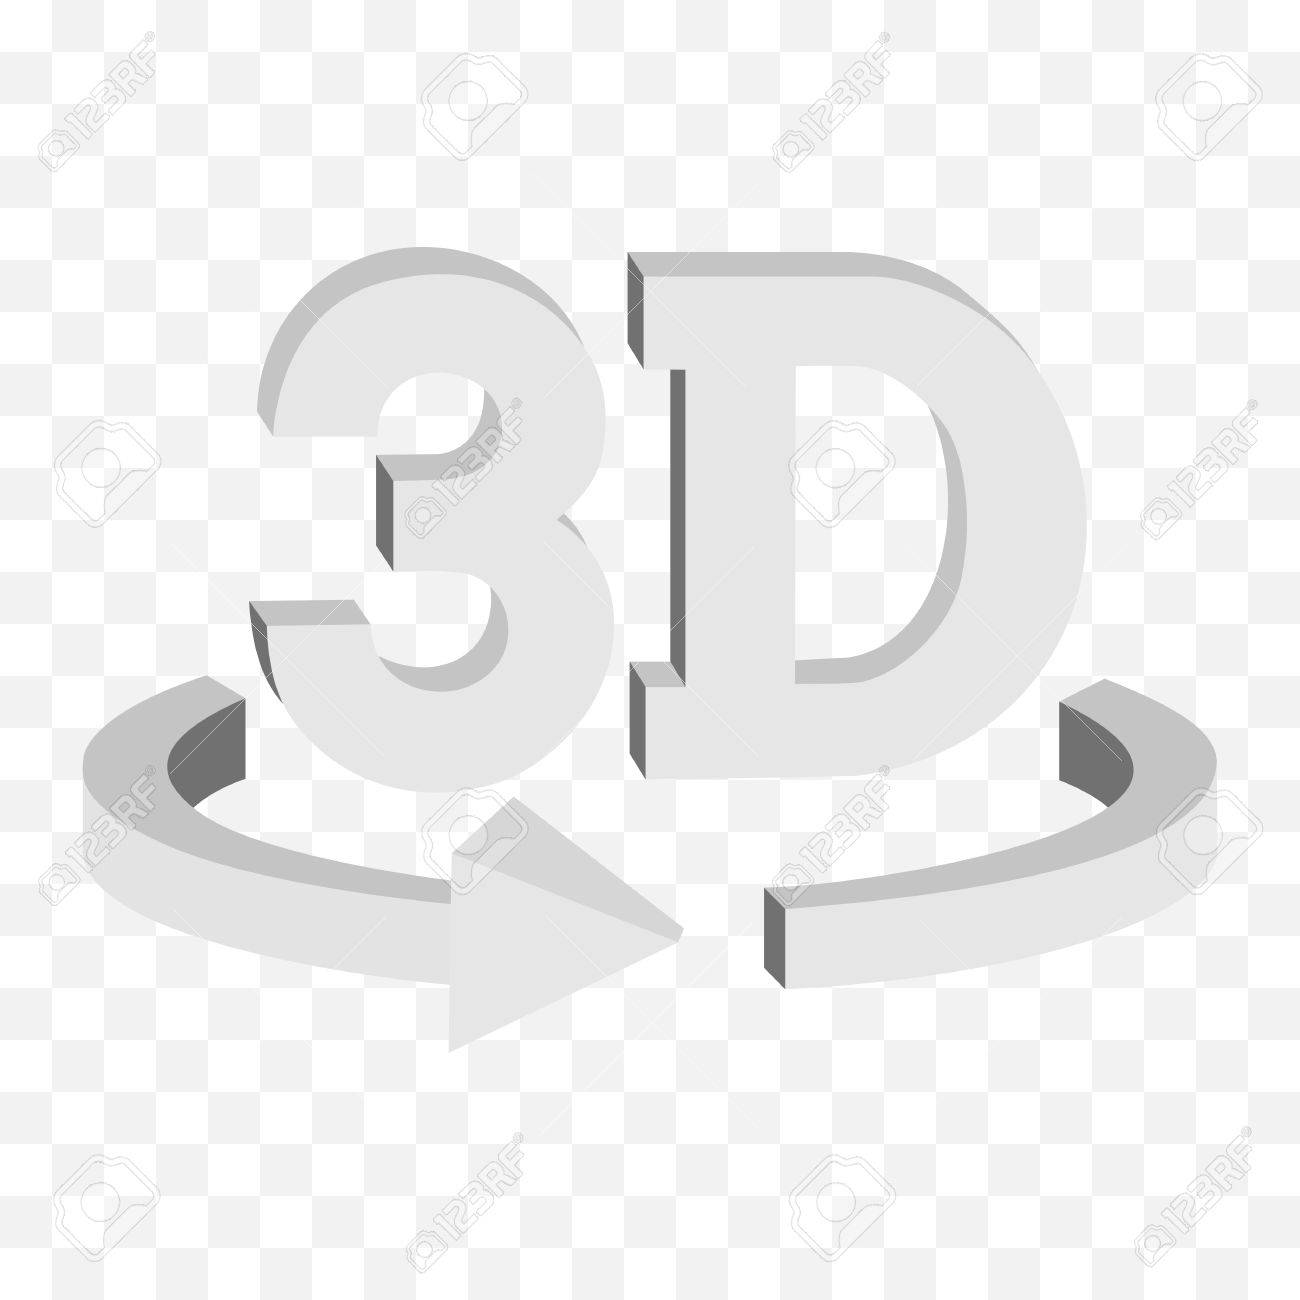 Background image rotate - 3d Rotate Button Sign In Solid Grayscale Colors Icon On Transparent Background Blank Horisontal Rotation